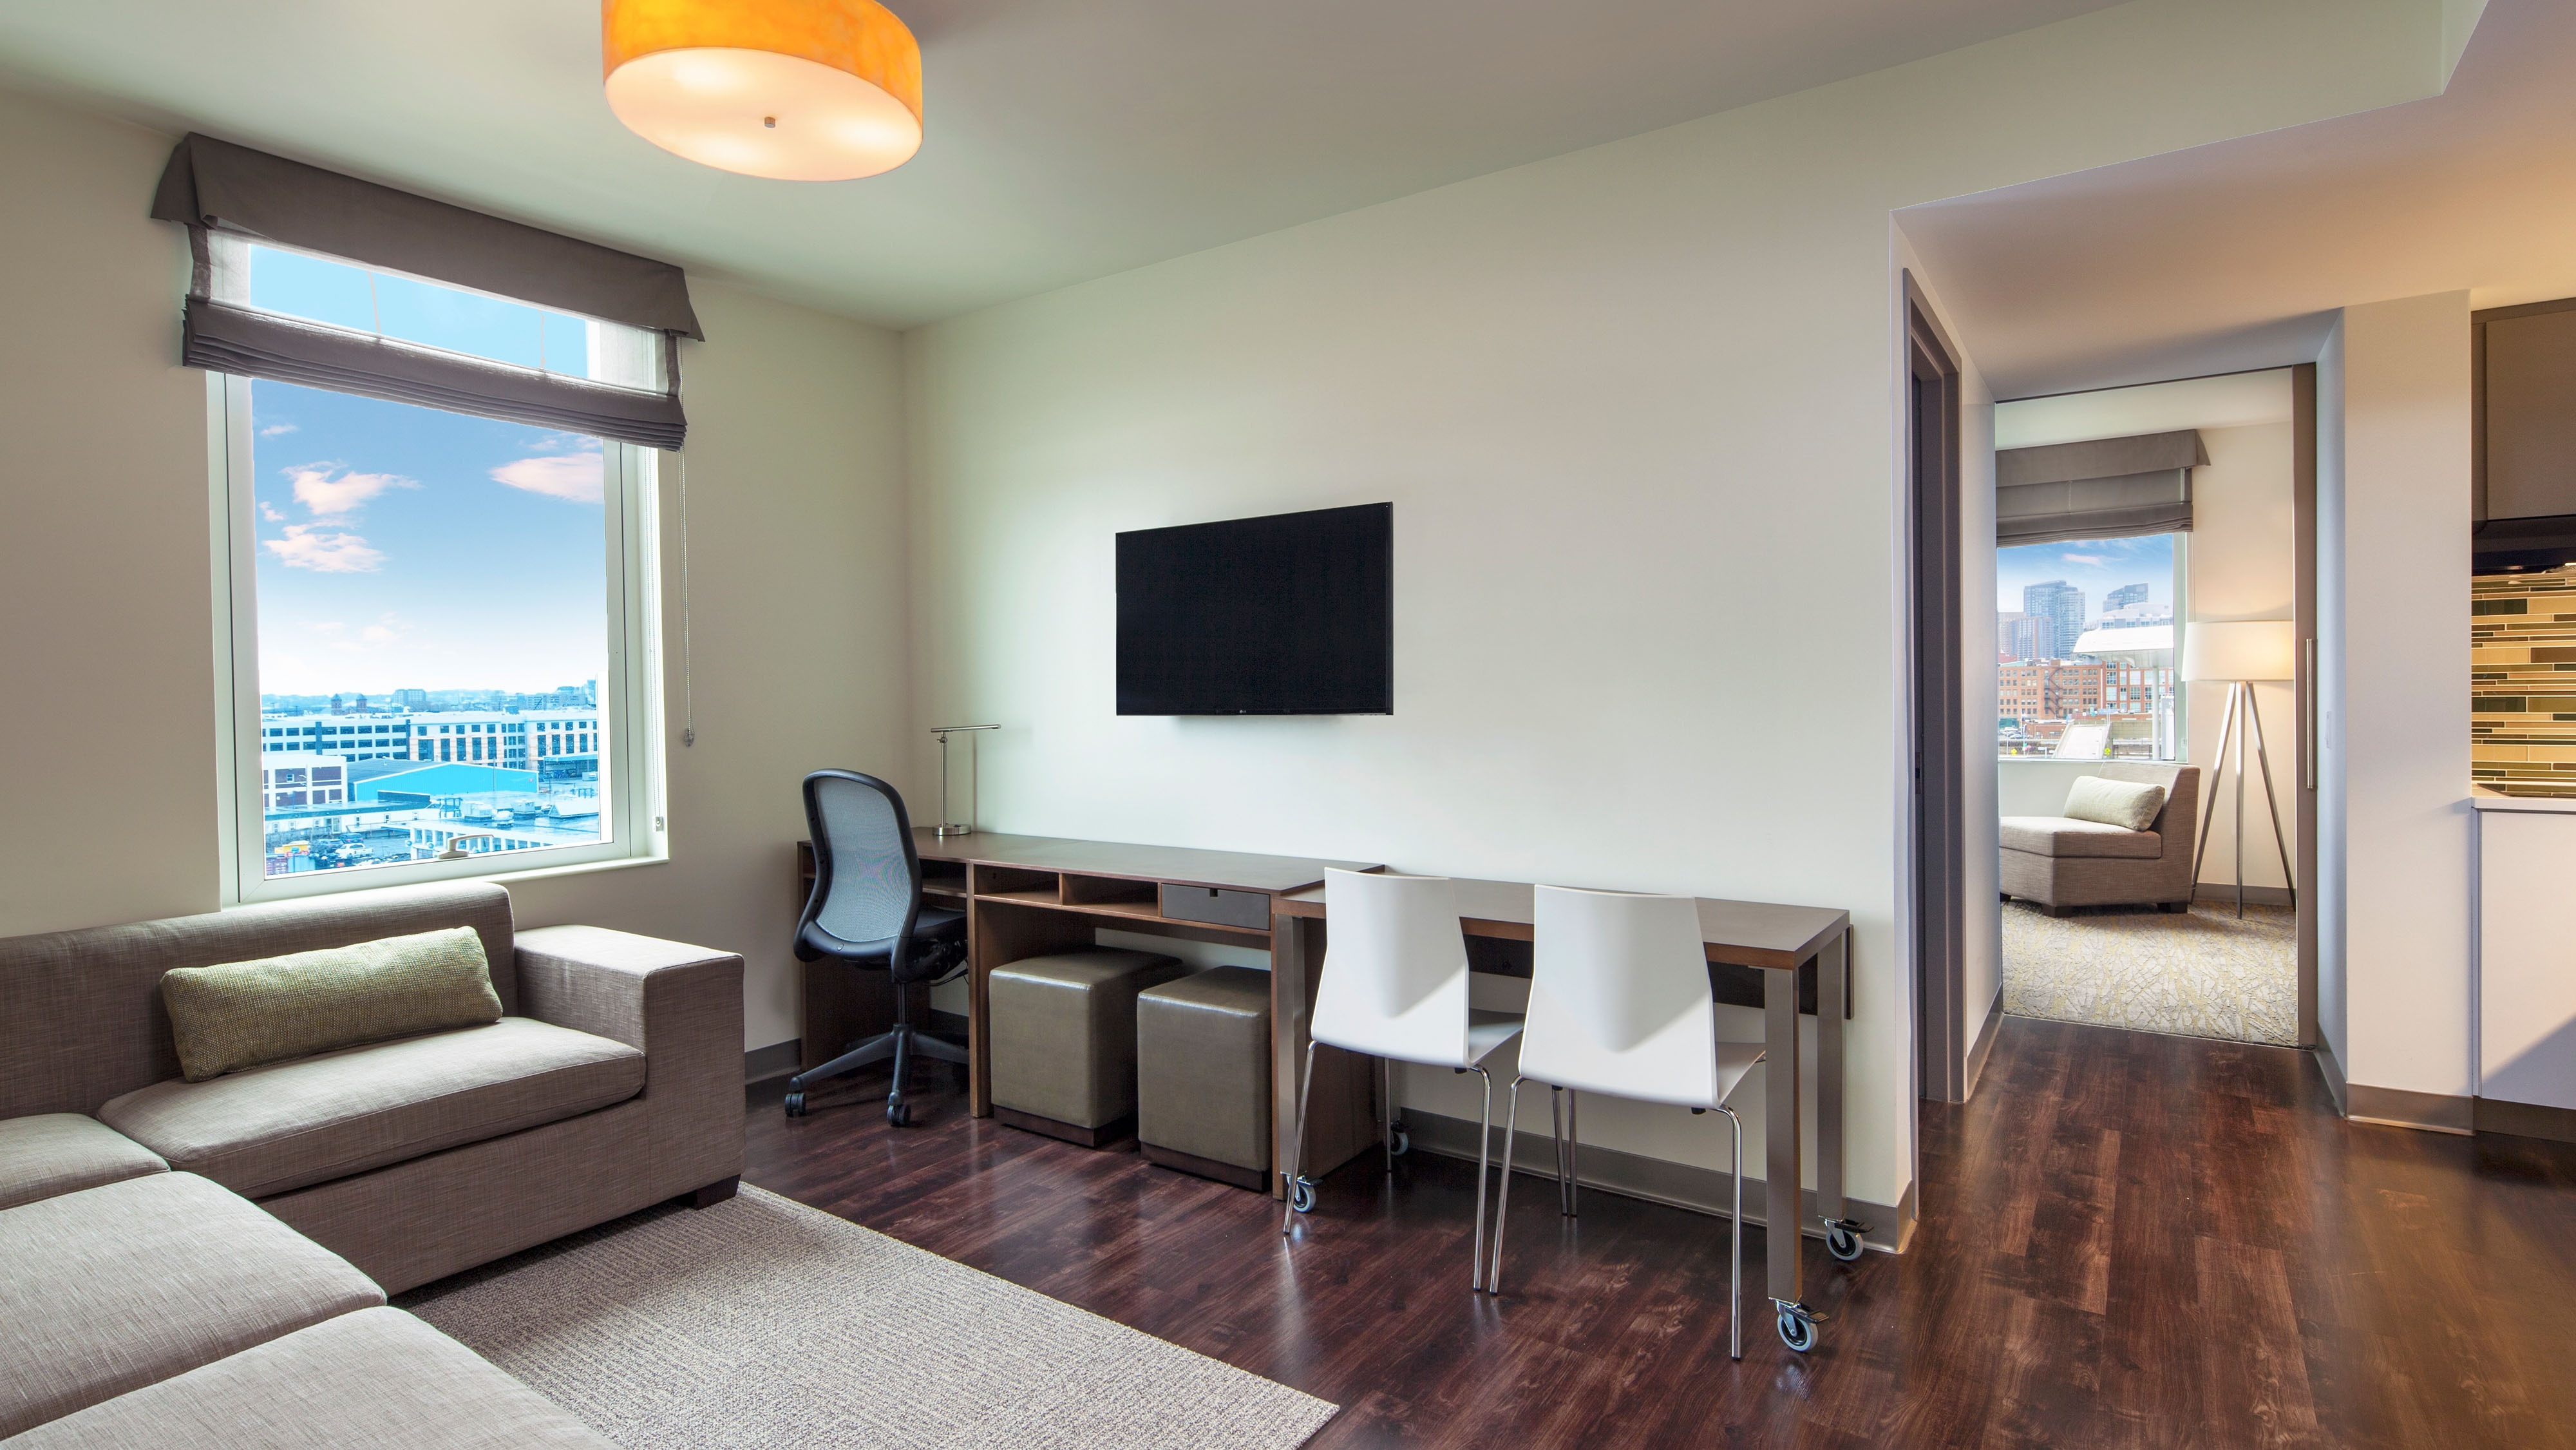 Book your stay with room to relax and spread out in our suites with separate sleeping and living space in the heart of Hampton Peninsula Town Center.